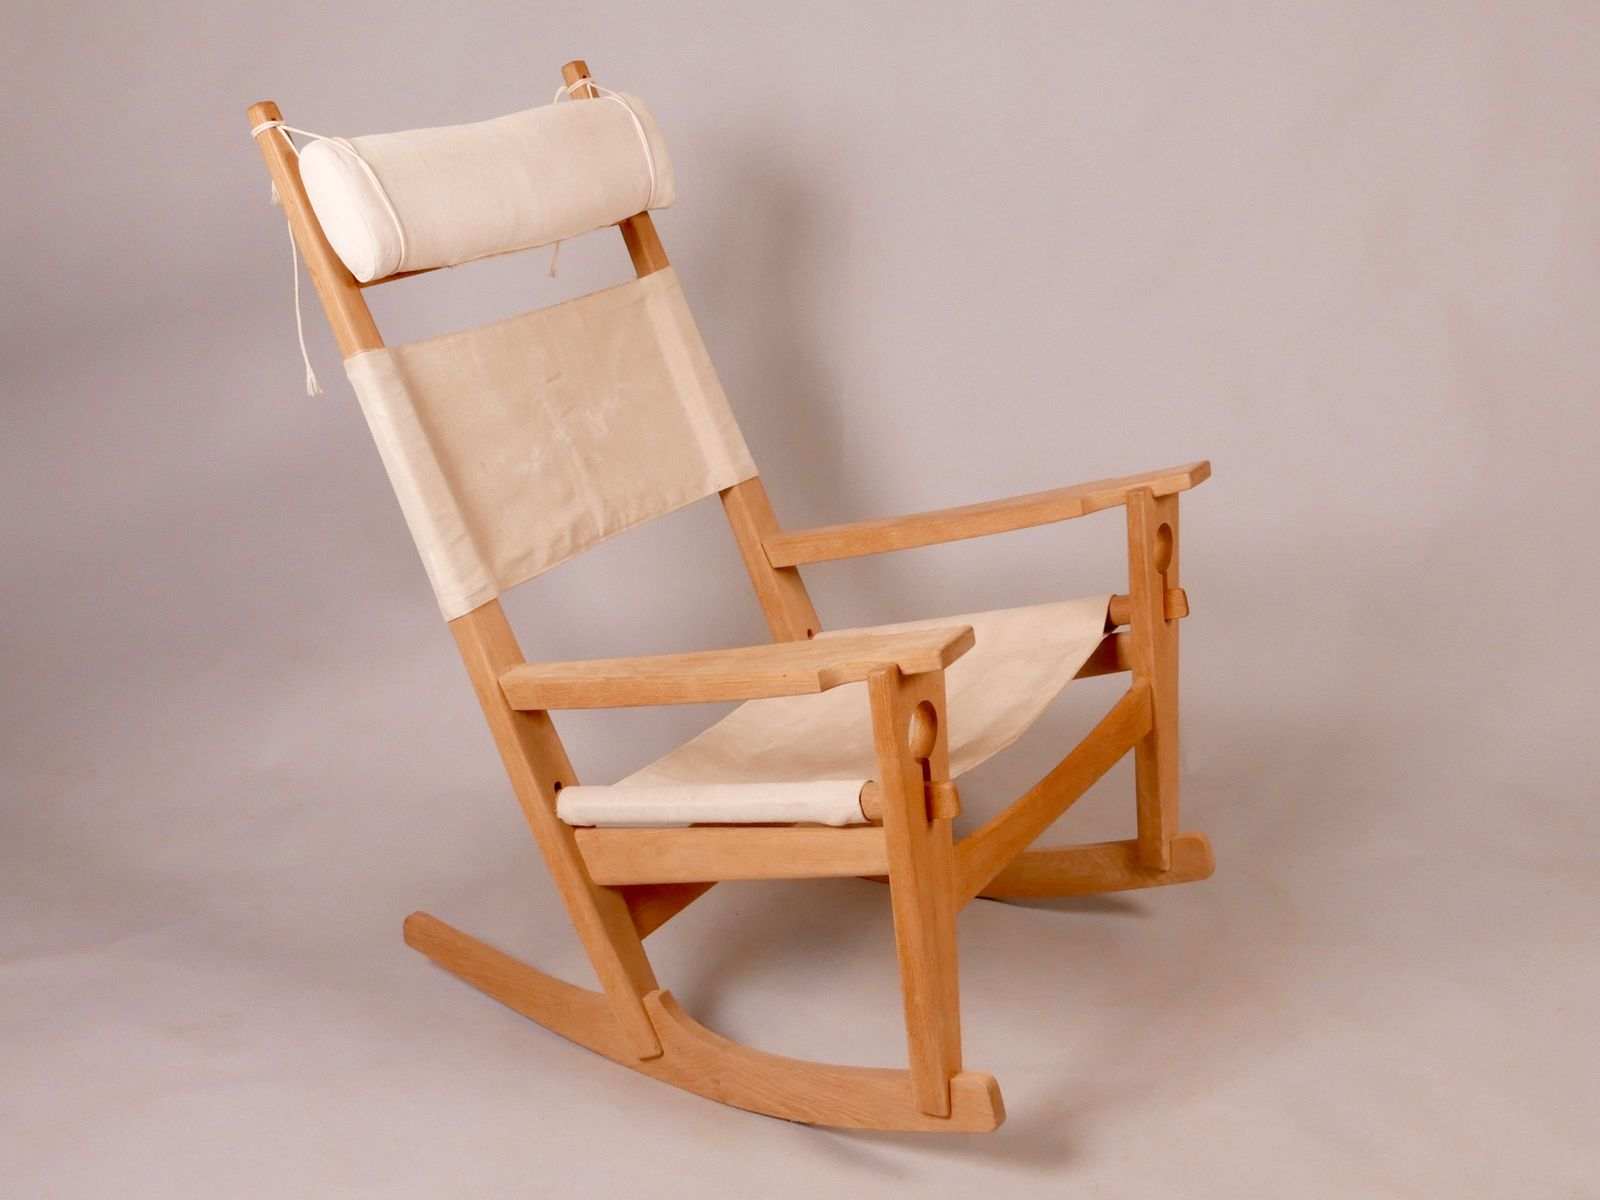 GE 673 Rocking Chair by Hans J Wegner for sale at Pamono